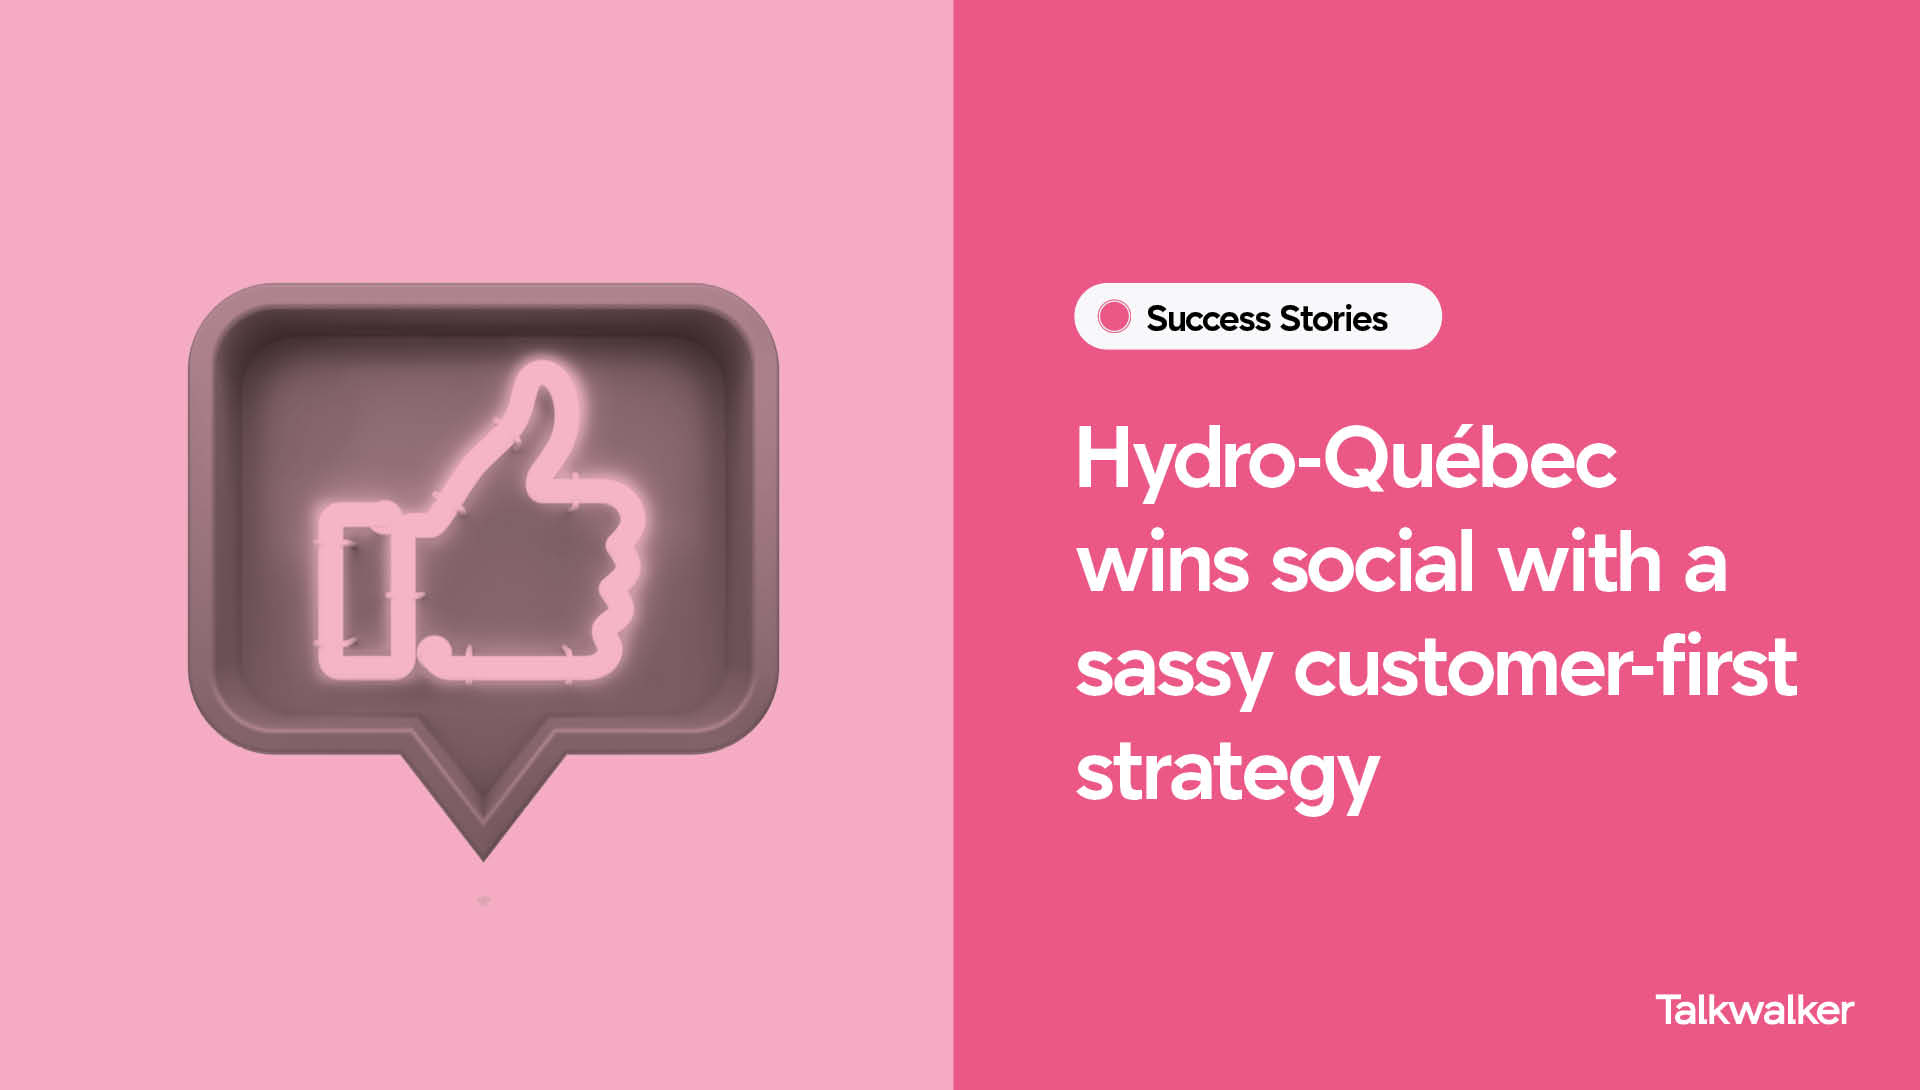 How a public utility wins big with a sassy social strategy, thumbs up sign